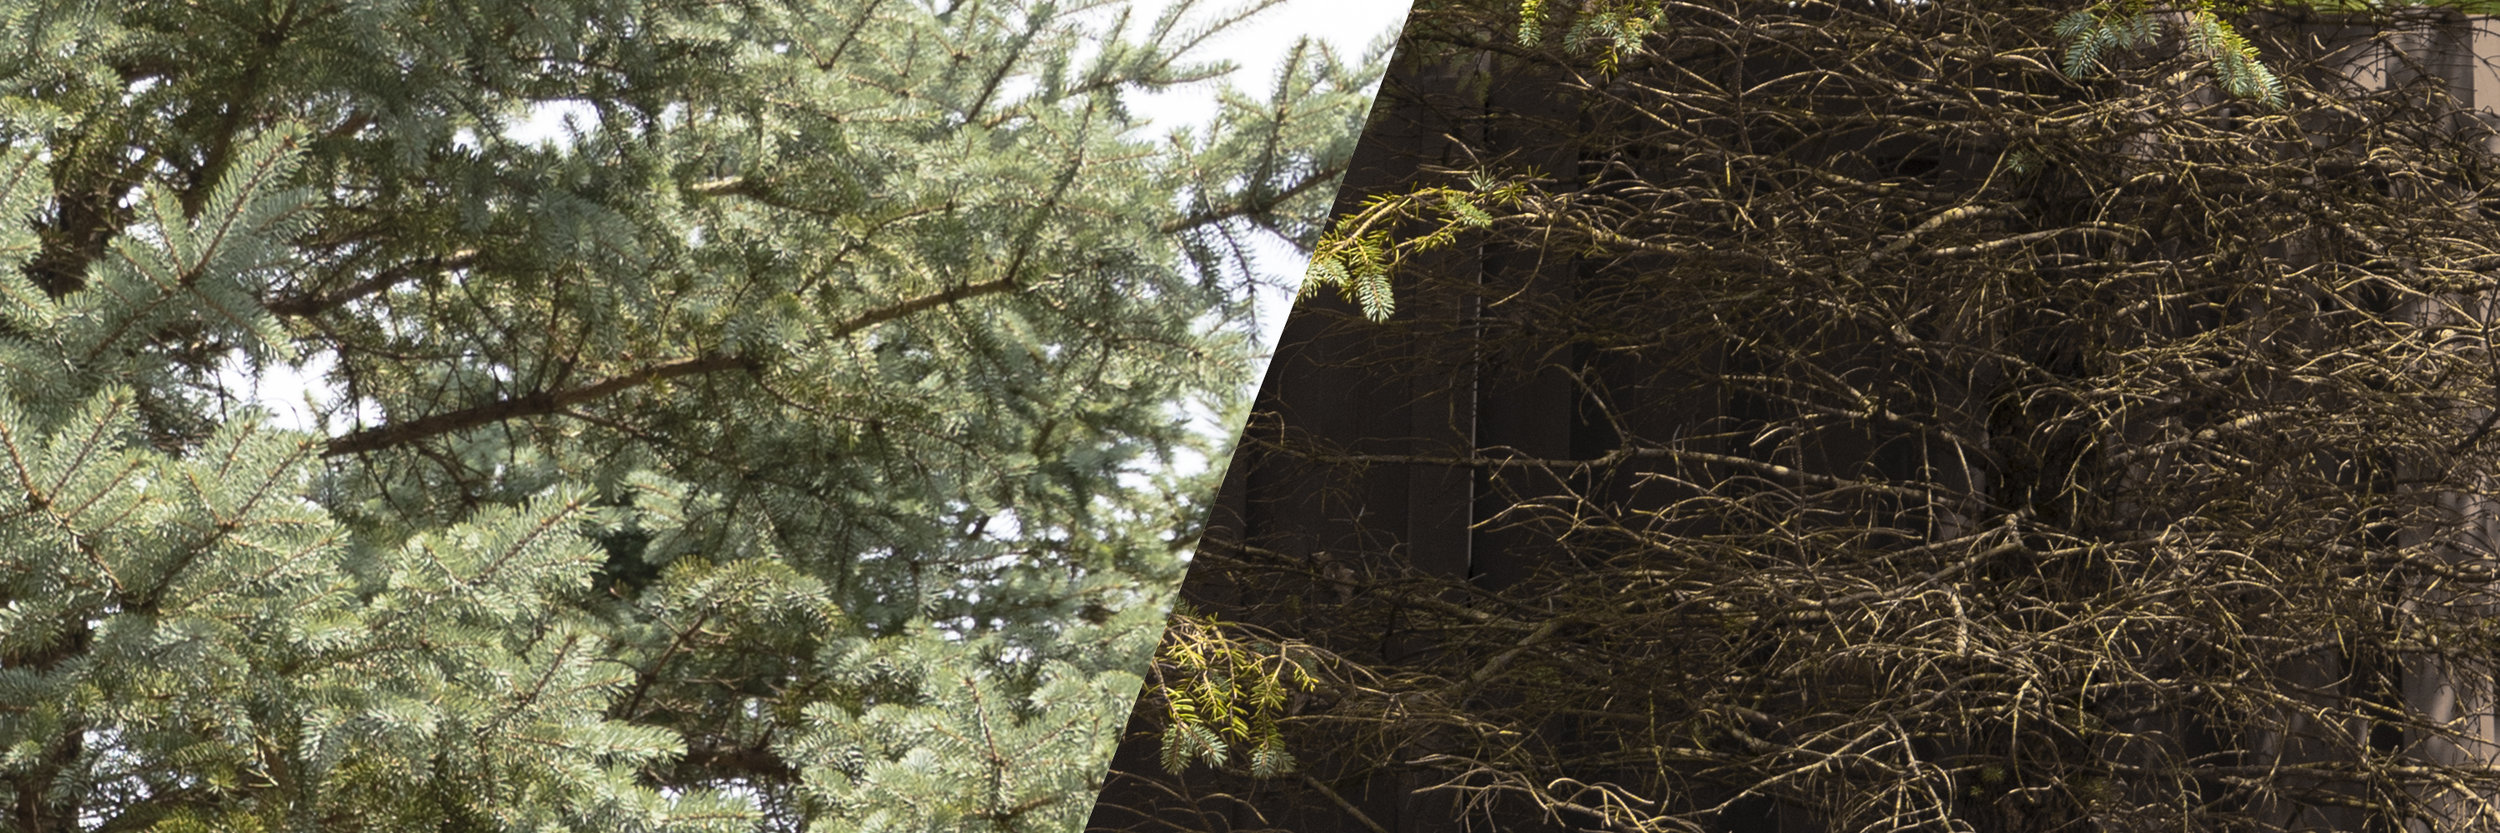 Blue Spruce without (left) and with (right) rhizosphaera needle cast